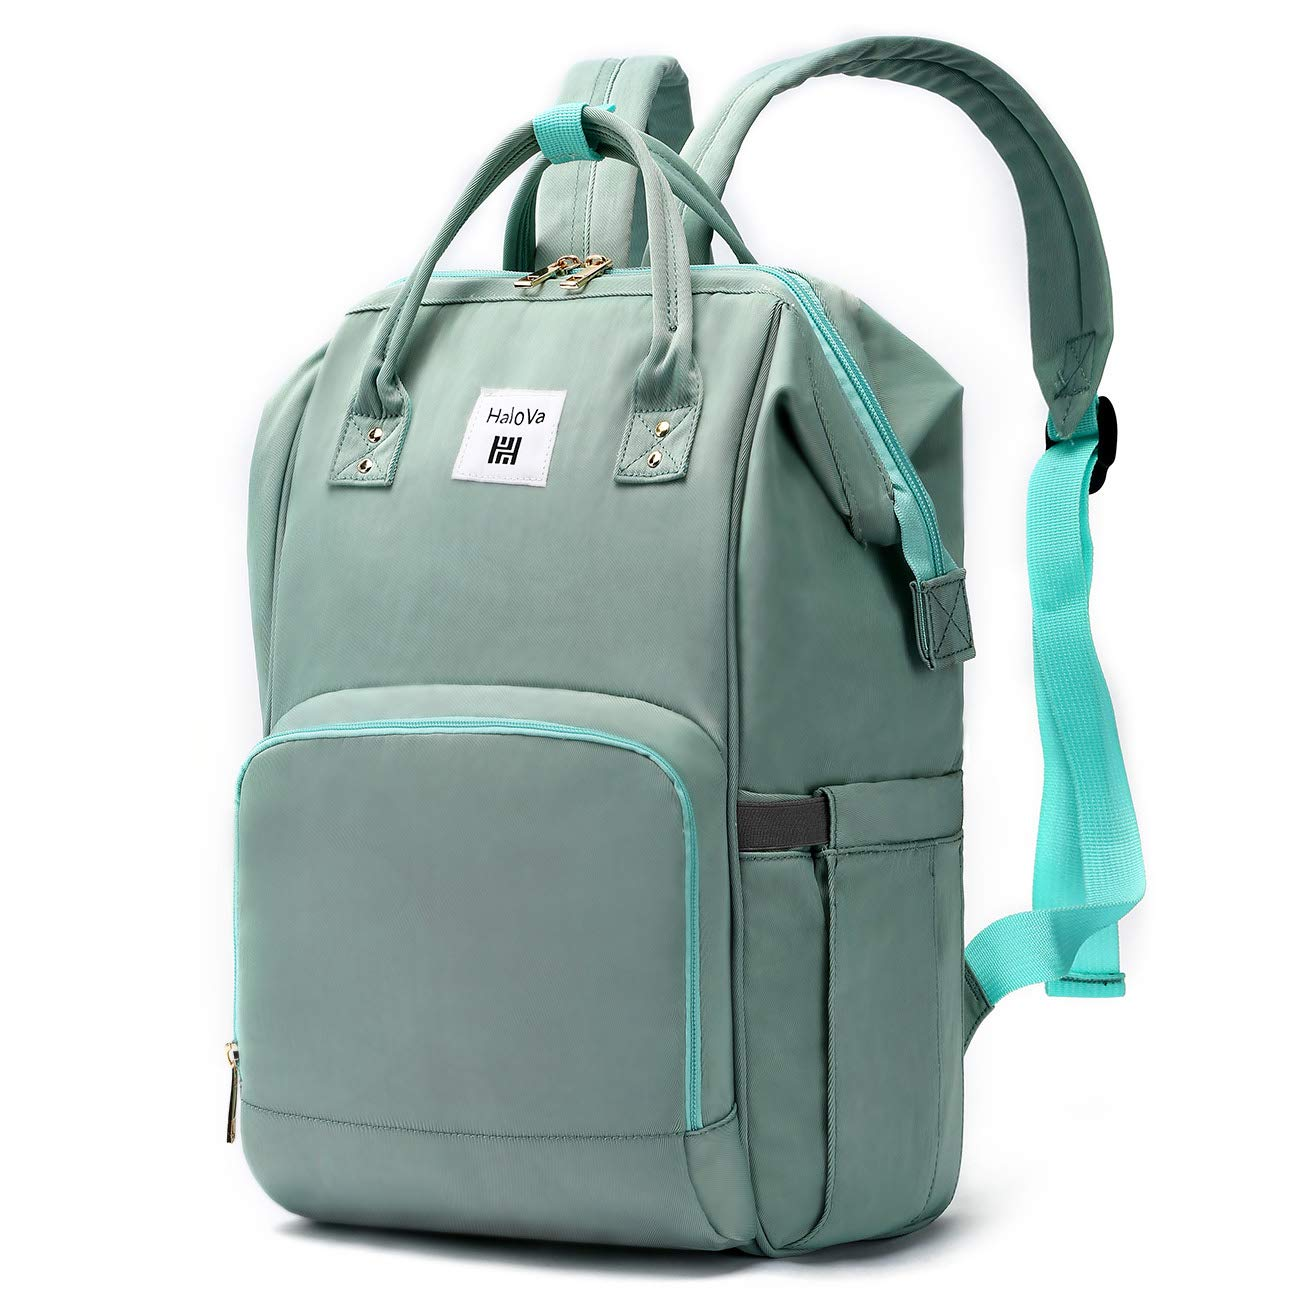 HaloVa Diaper Backpack, Mommy Backpack, Multi-Function Waterproof Travel Backpack Nappy Bags for Baby Care, Large Capacity, Comfortable and Durable, Mint Green